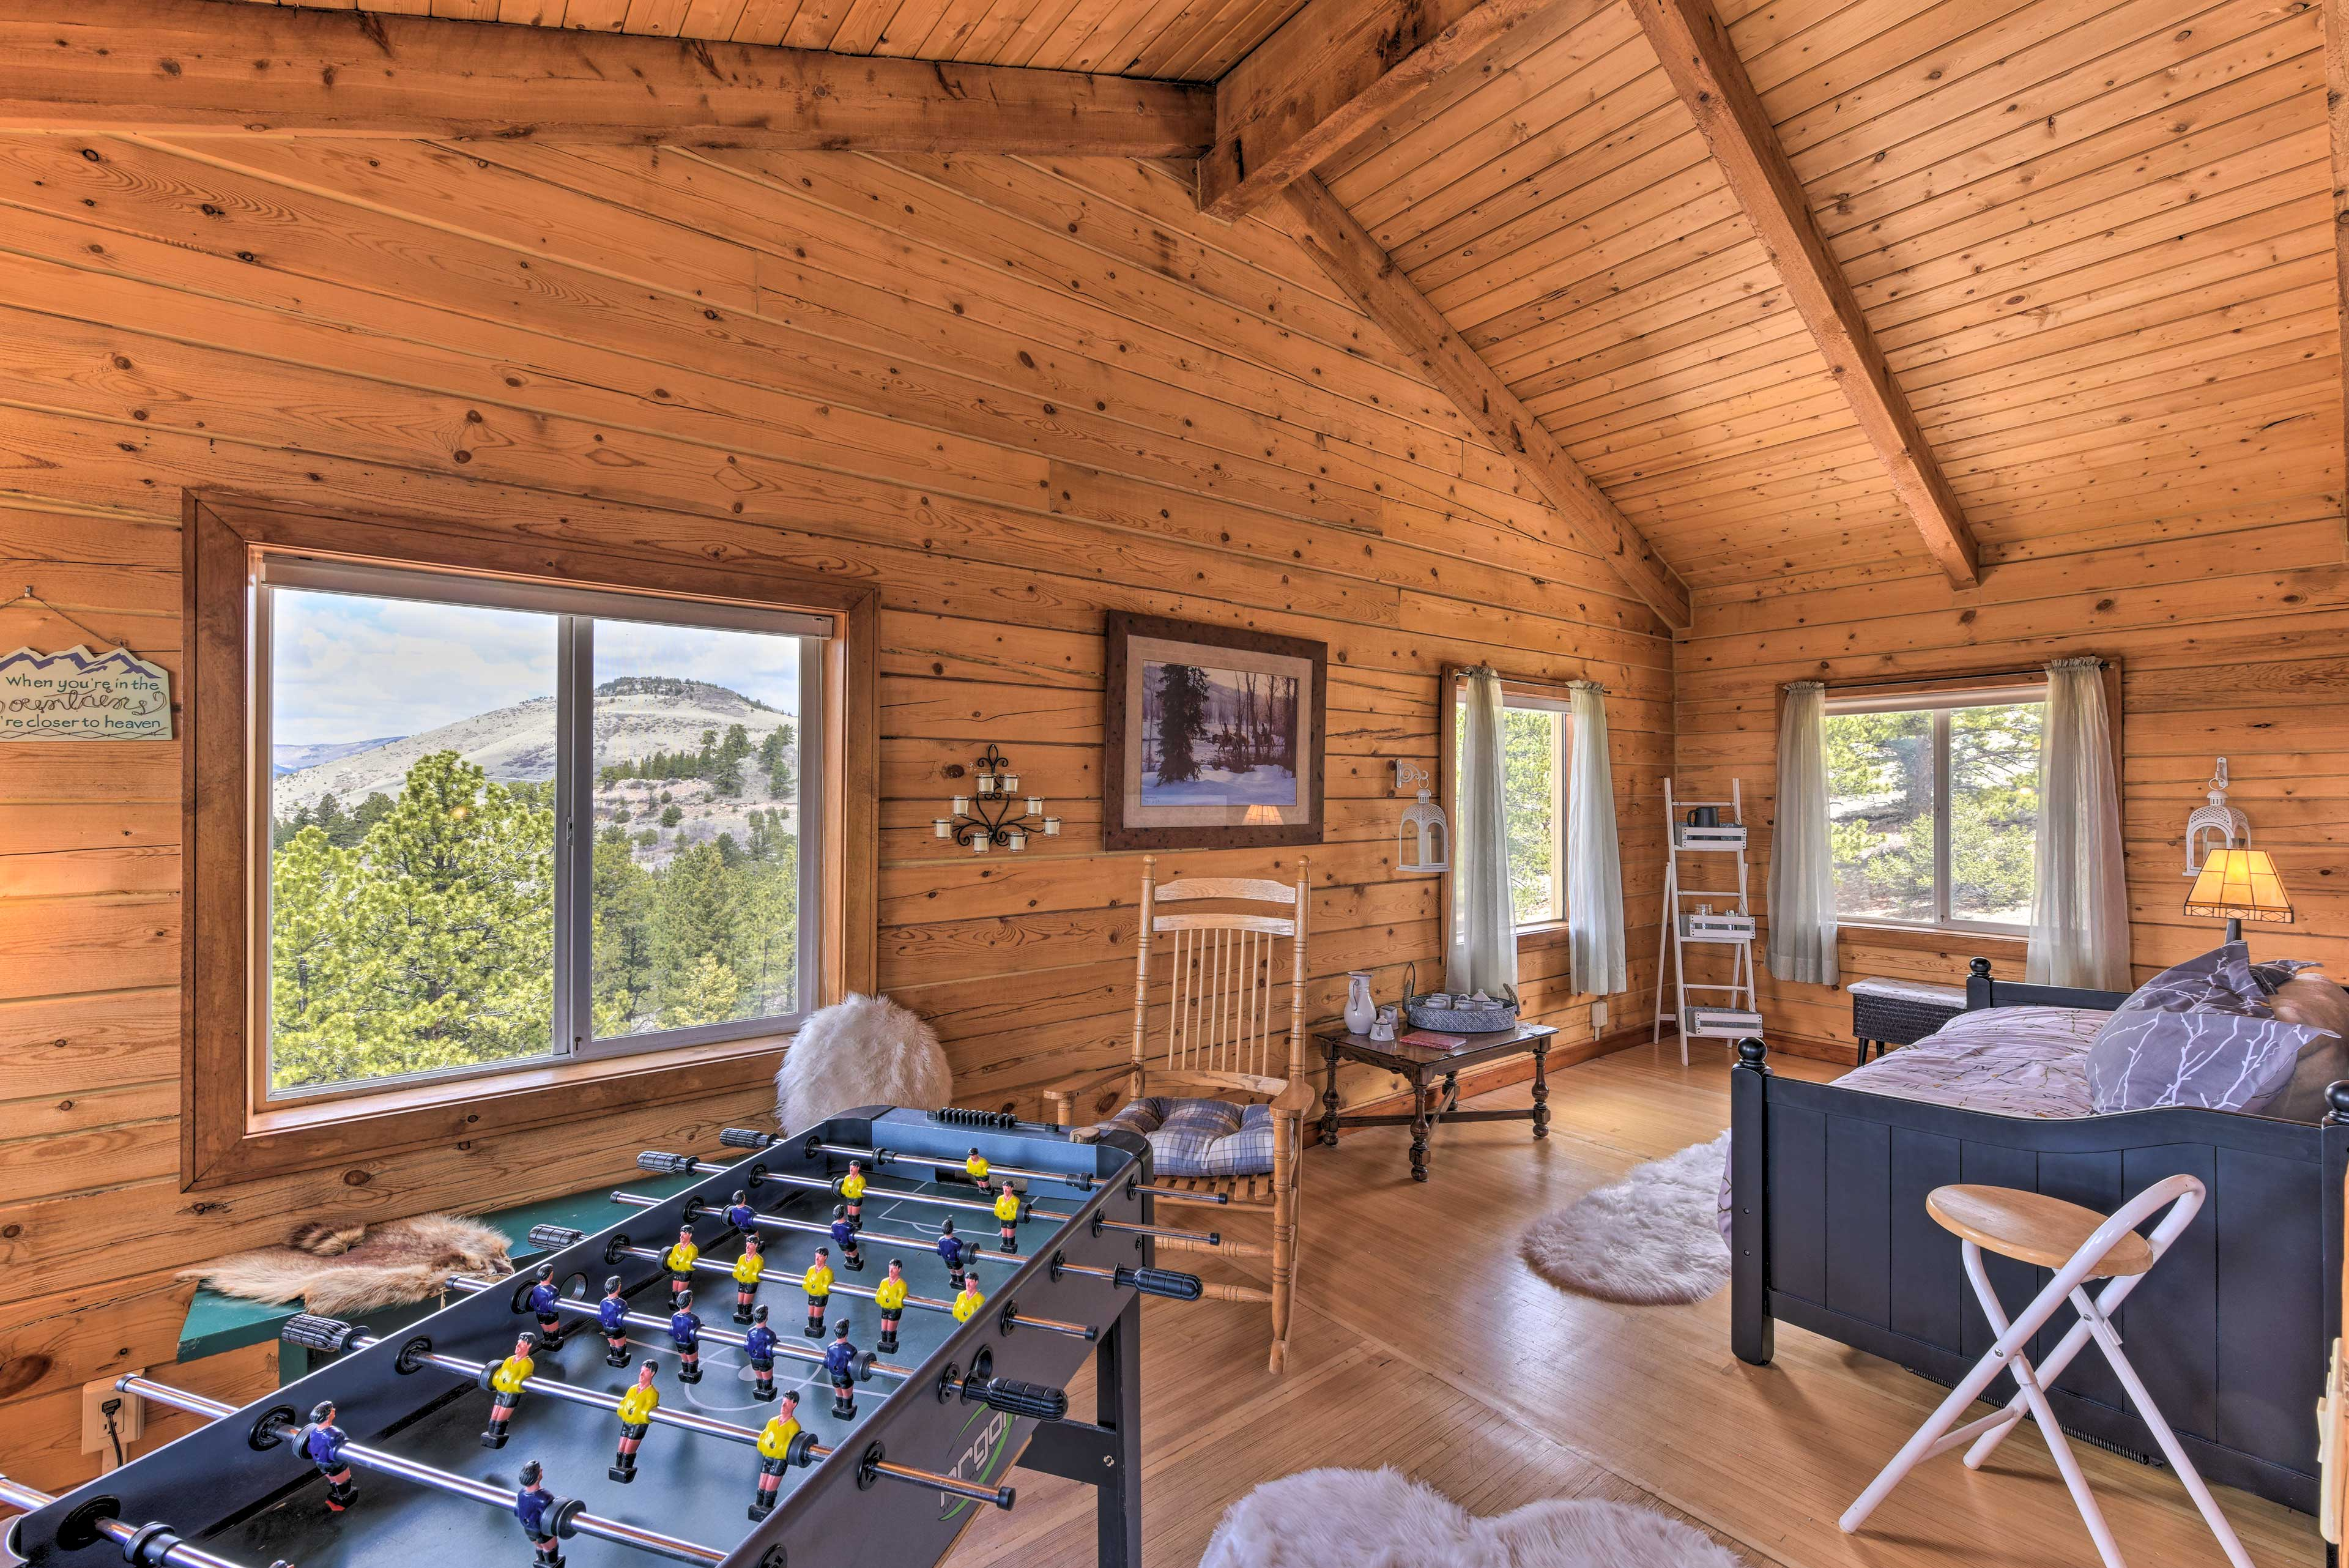 Hang at the cabin and get the ball flying during a game of foosball.